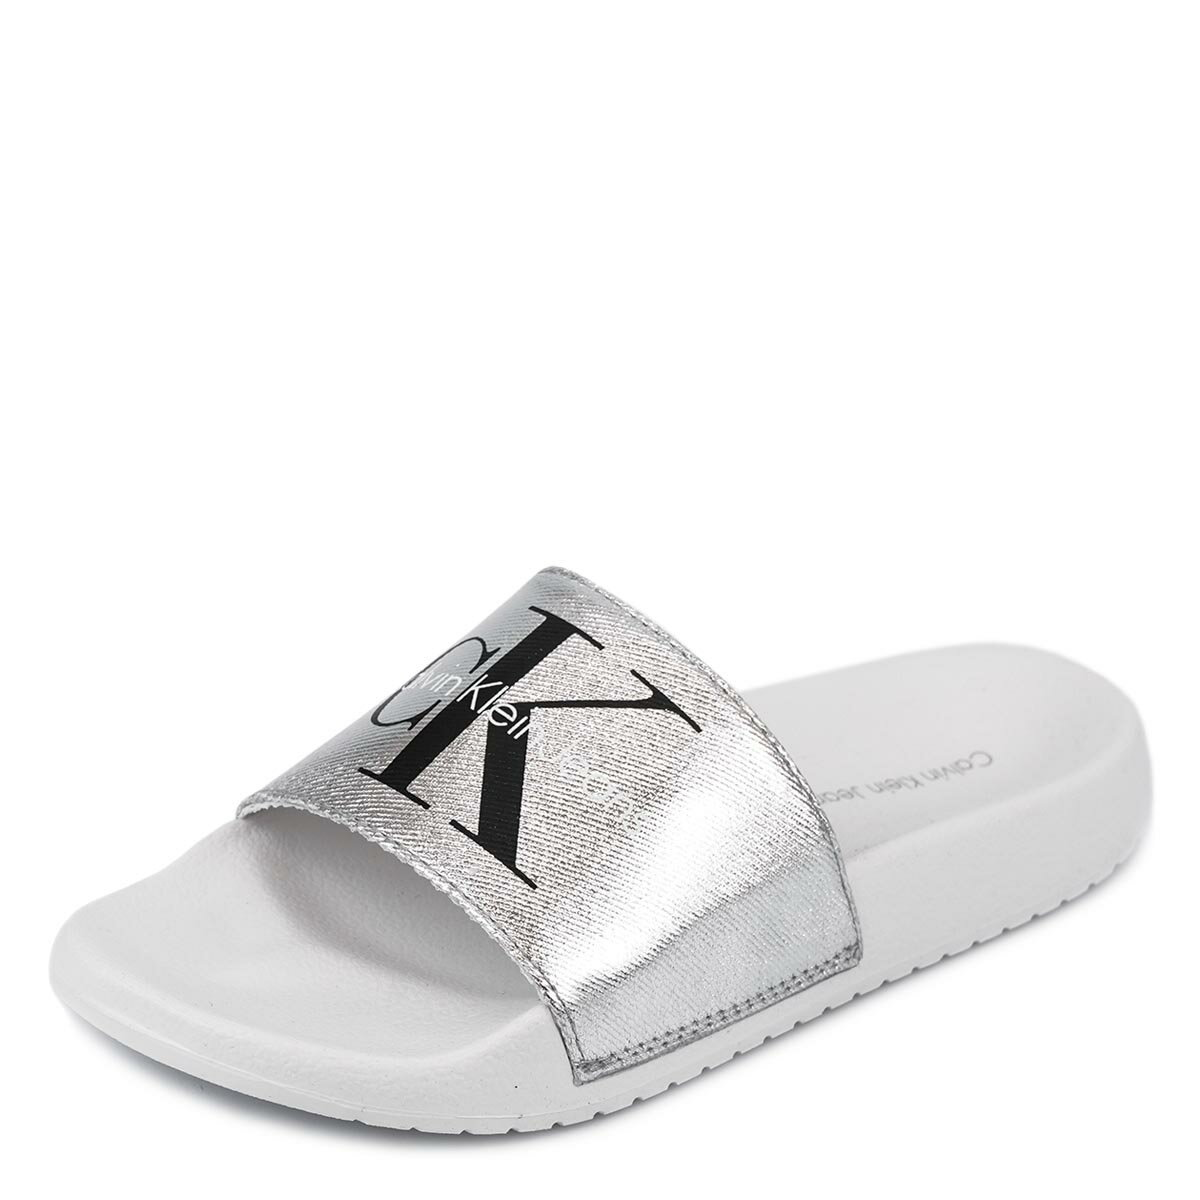 サンダル, スポーツサンダル Calvin Klein Jeans 34R3654 CHANTAL METAL CANVAS SANDALS SILVERWHITE